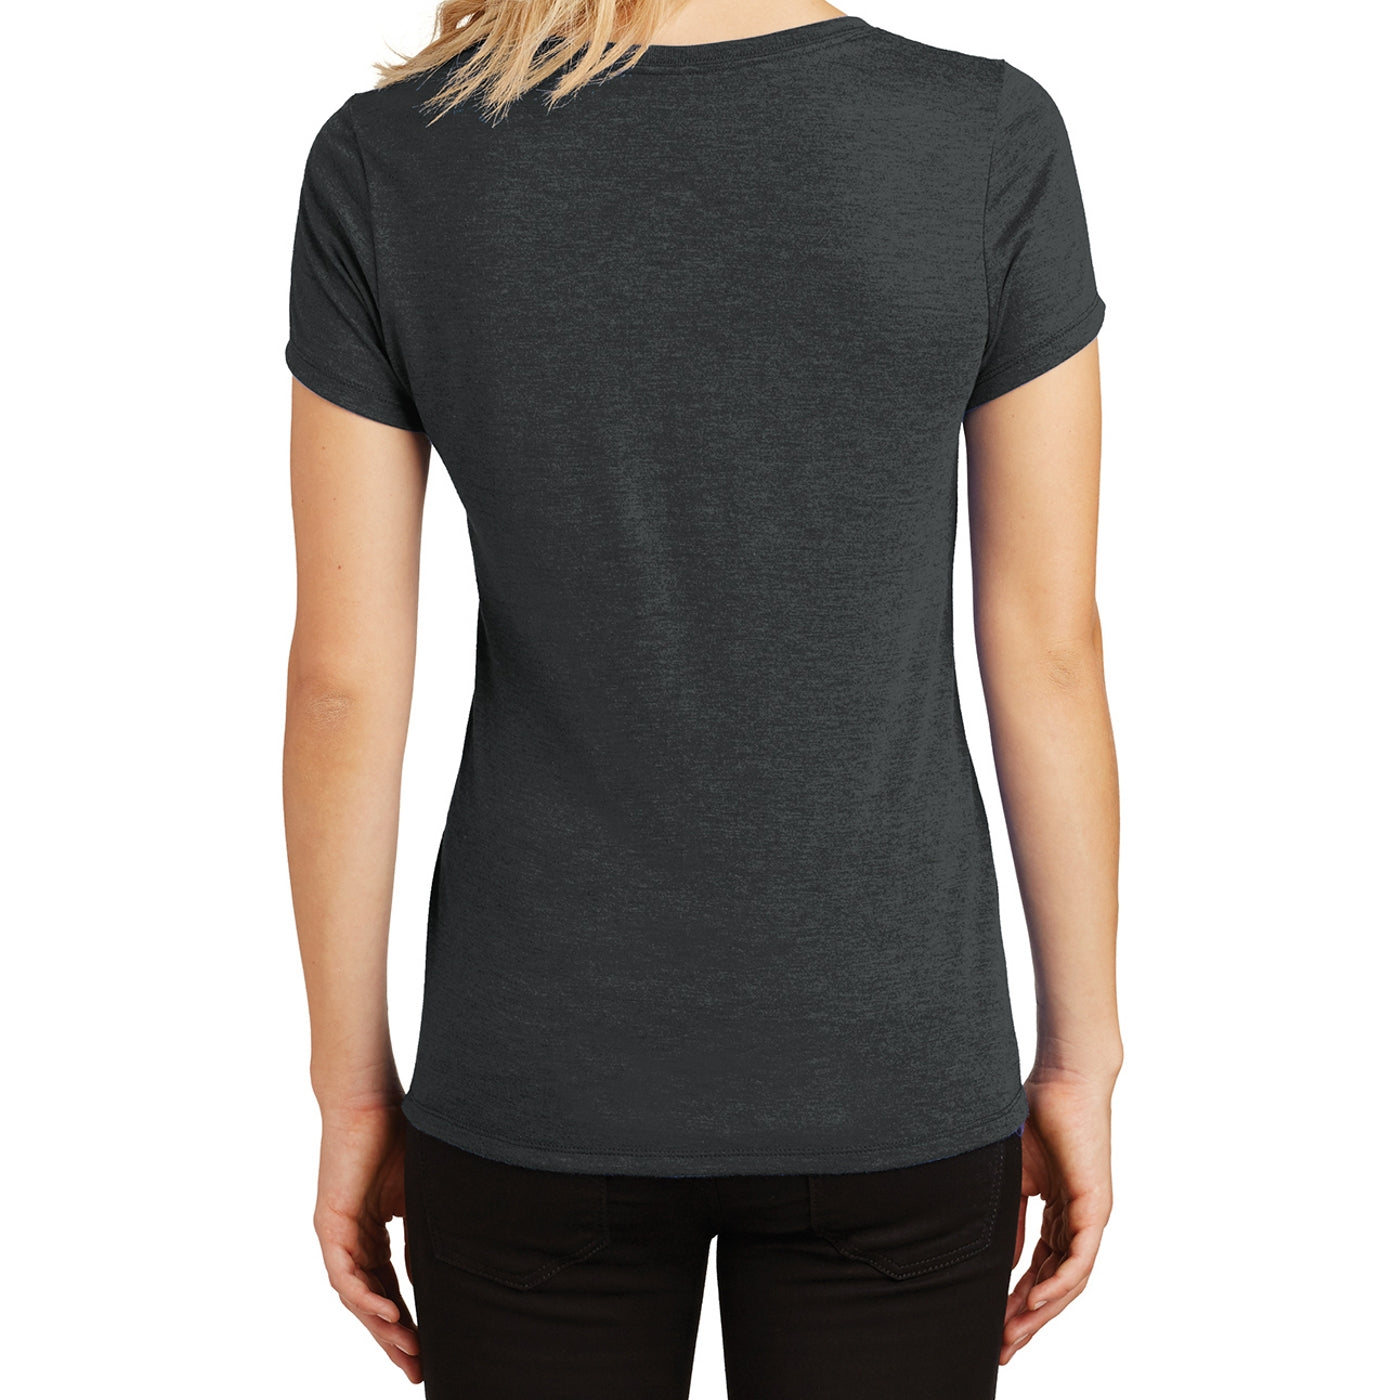 Women's Perfect Tri V-Neck Tee - Black Frost - Back